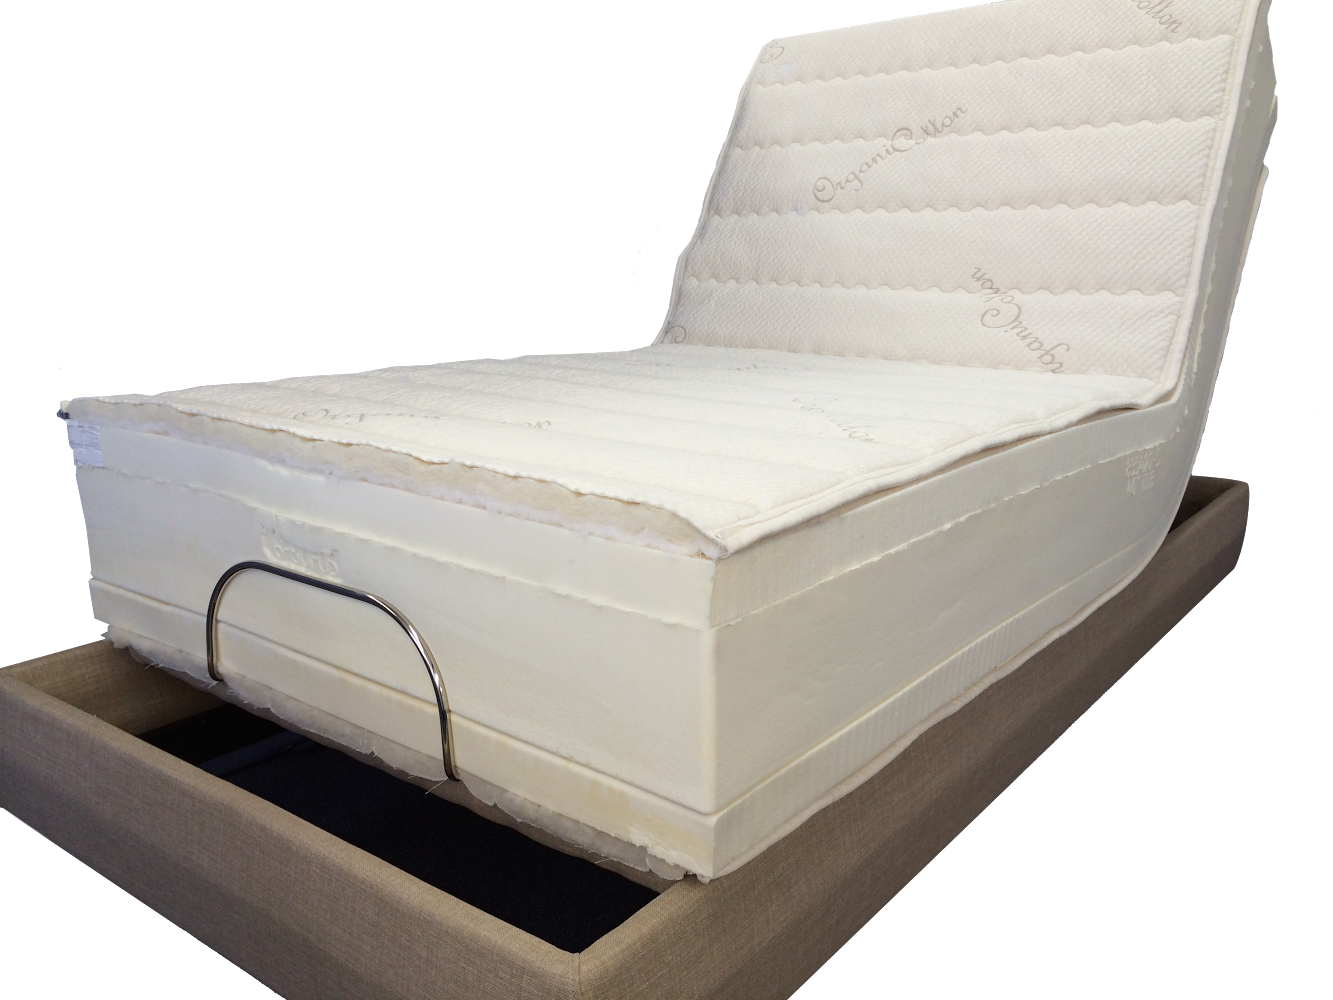 twinsize adjustable bed Phoenix adjustable bed motorized frame foundation motion mattress replacement